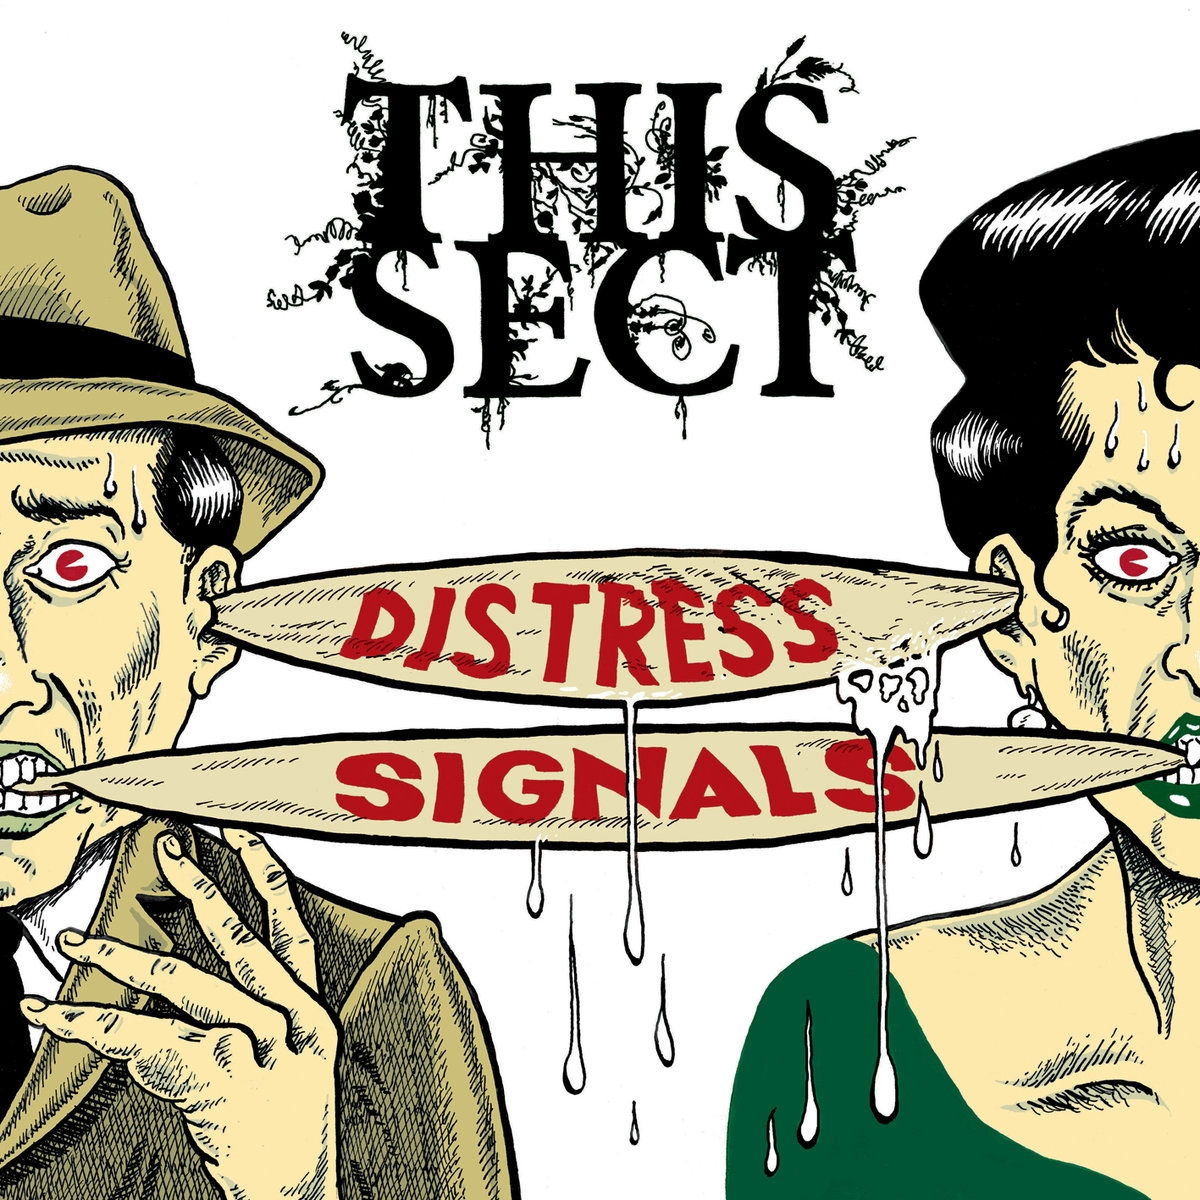 This Sect, Distress Signals